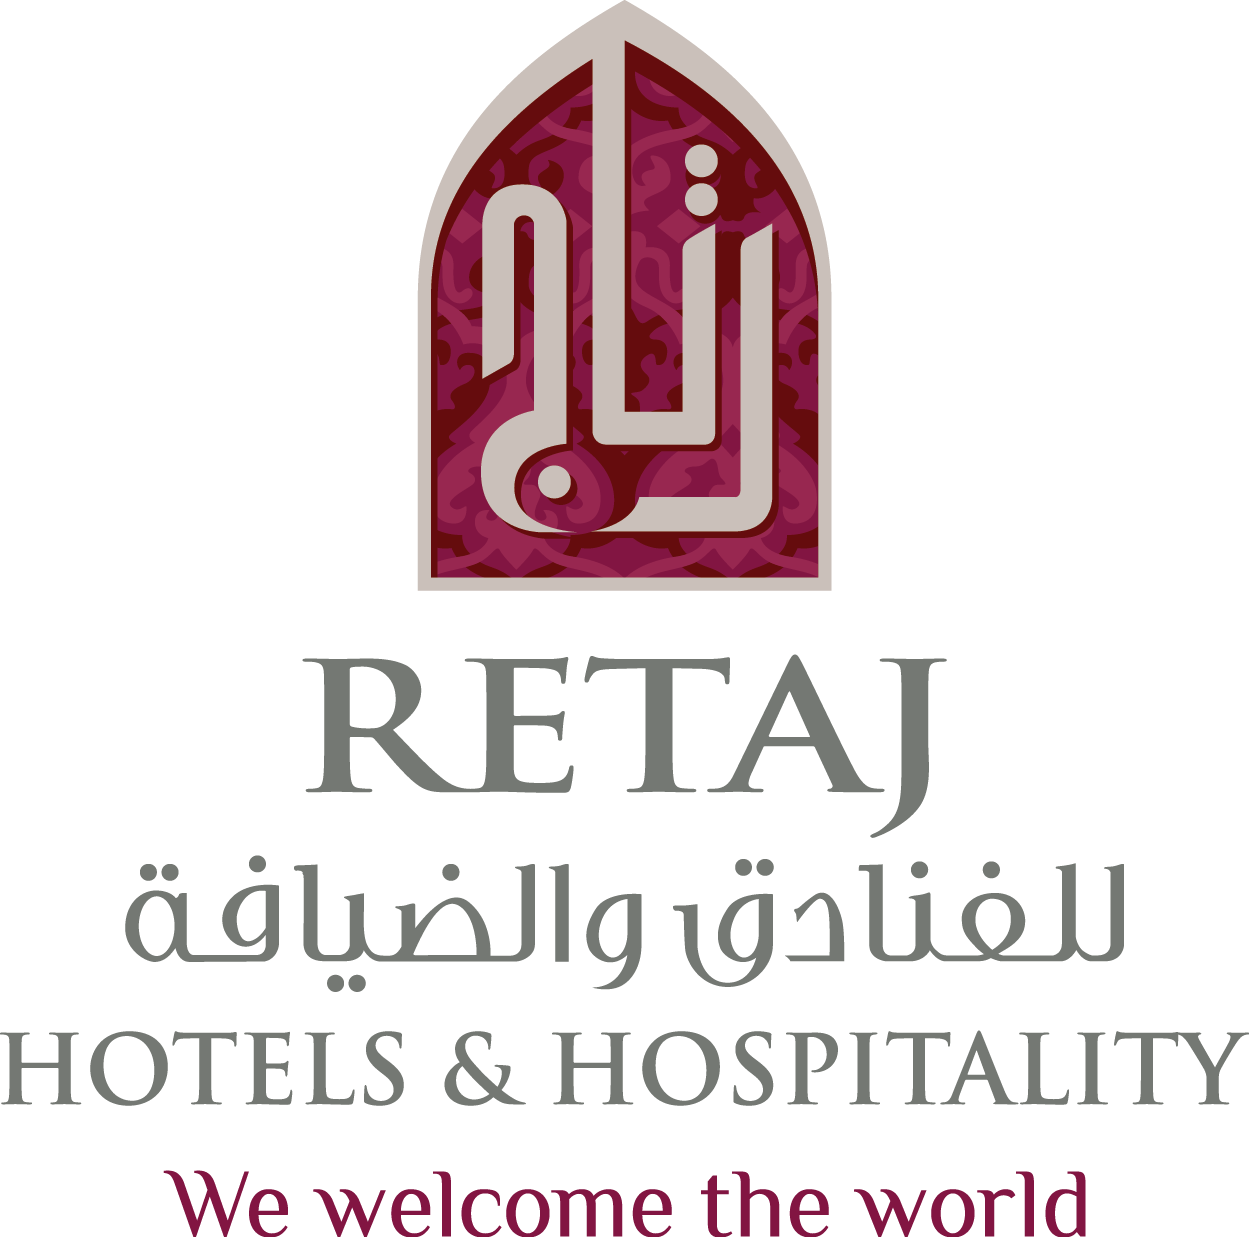 Retaj Hotels and Hospitality